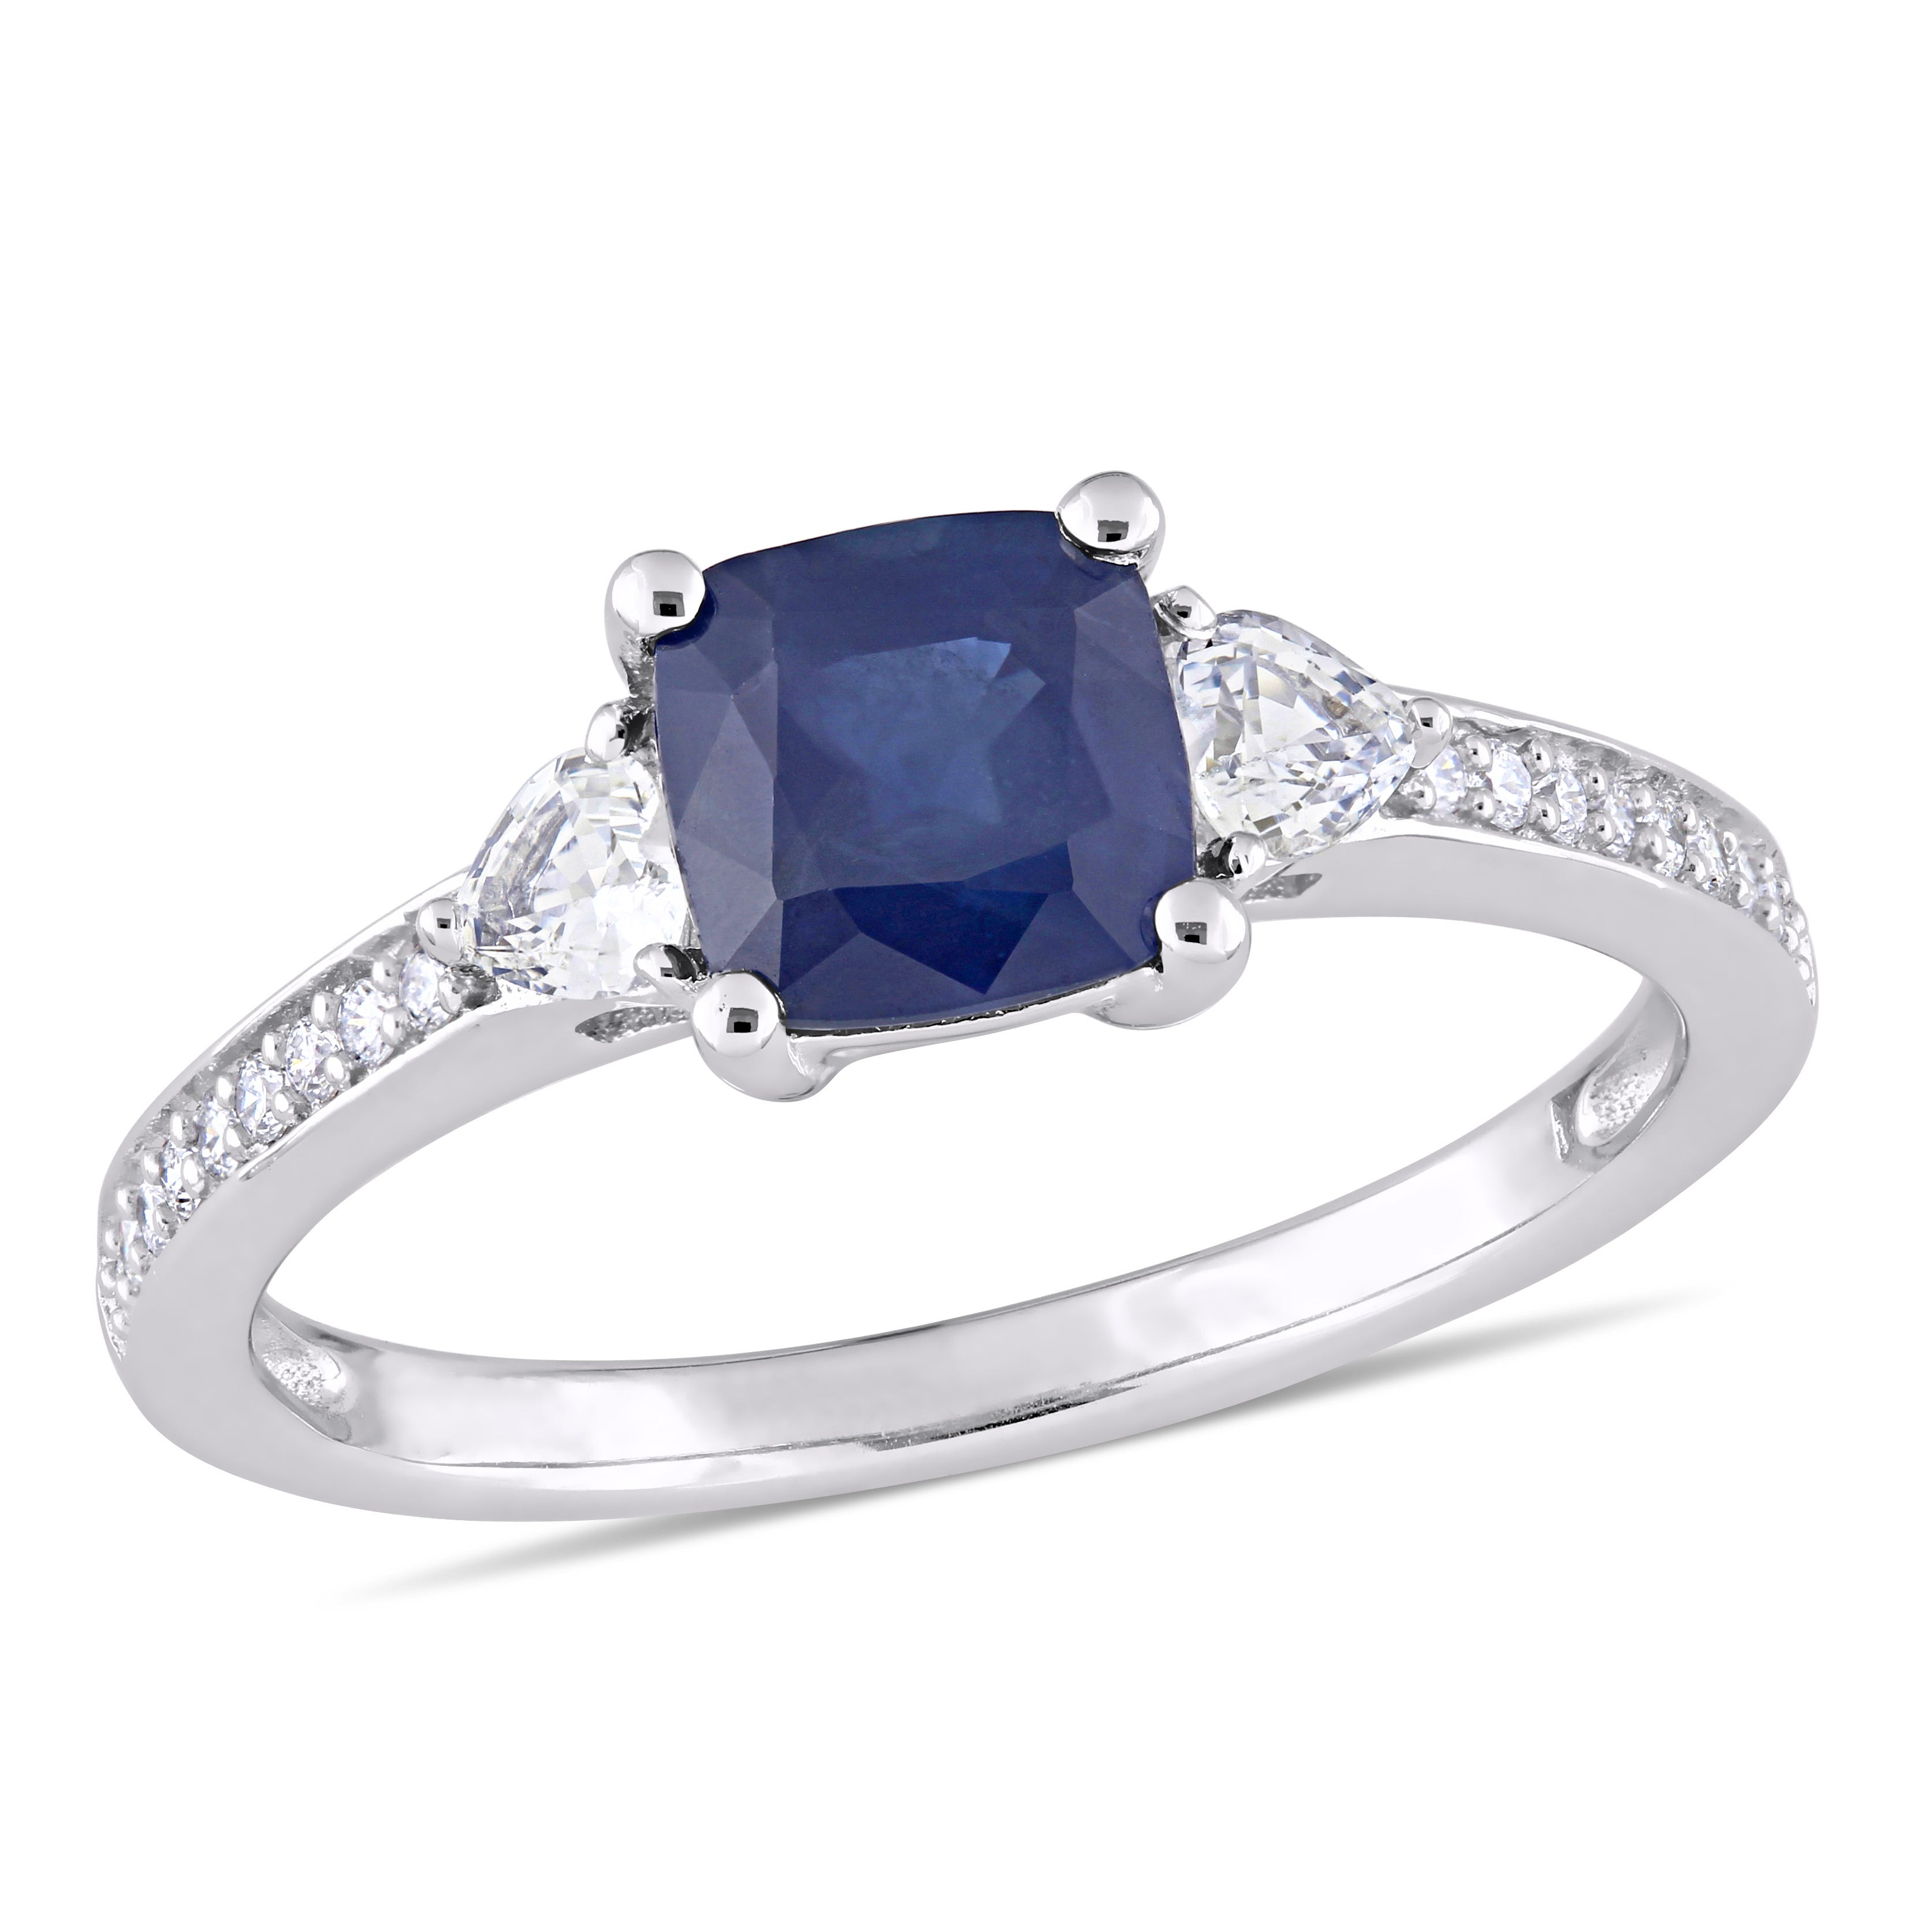 Three-Stone Cushion-Cut & Heart Sapphire Engagement Ring in 14k White Gold